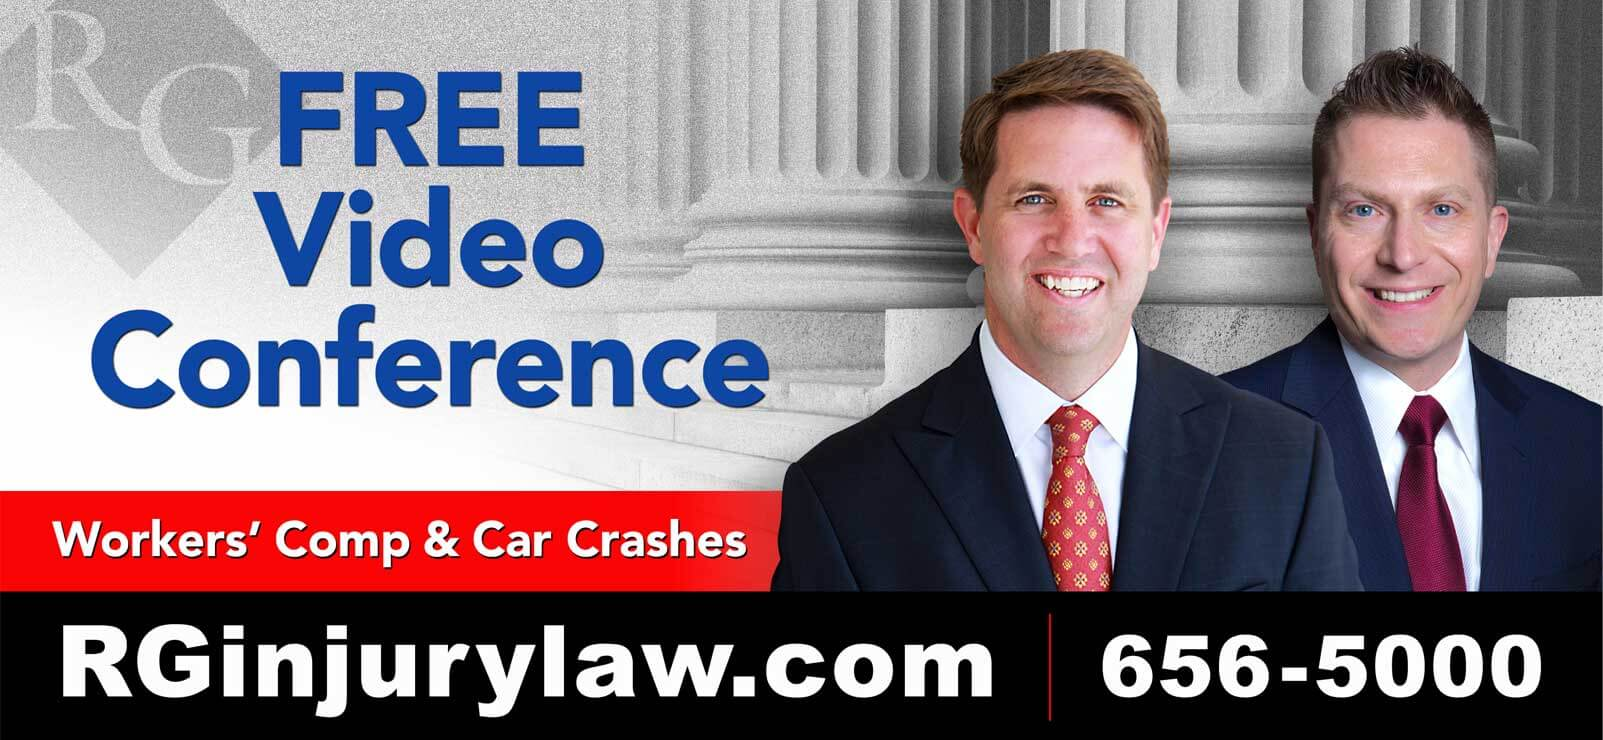 Personal Injury Law Firm Lancaster Free Video Consultations